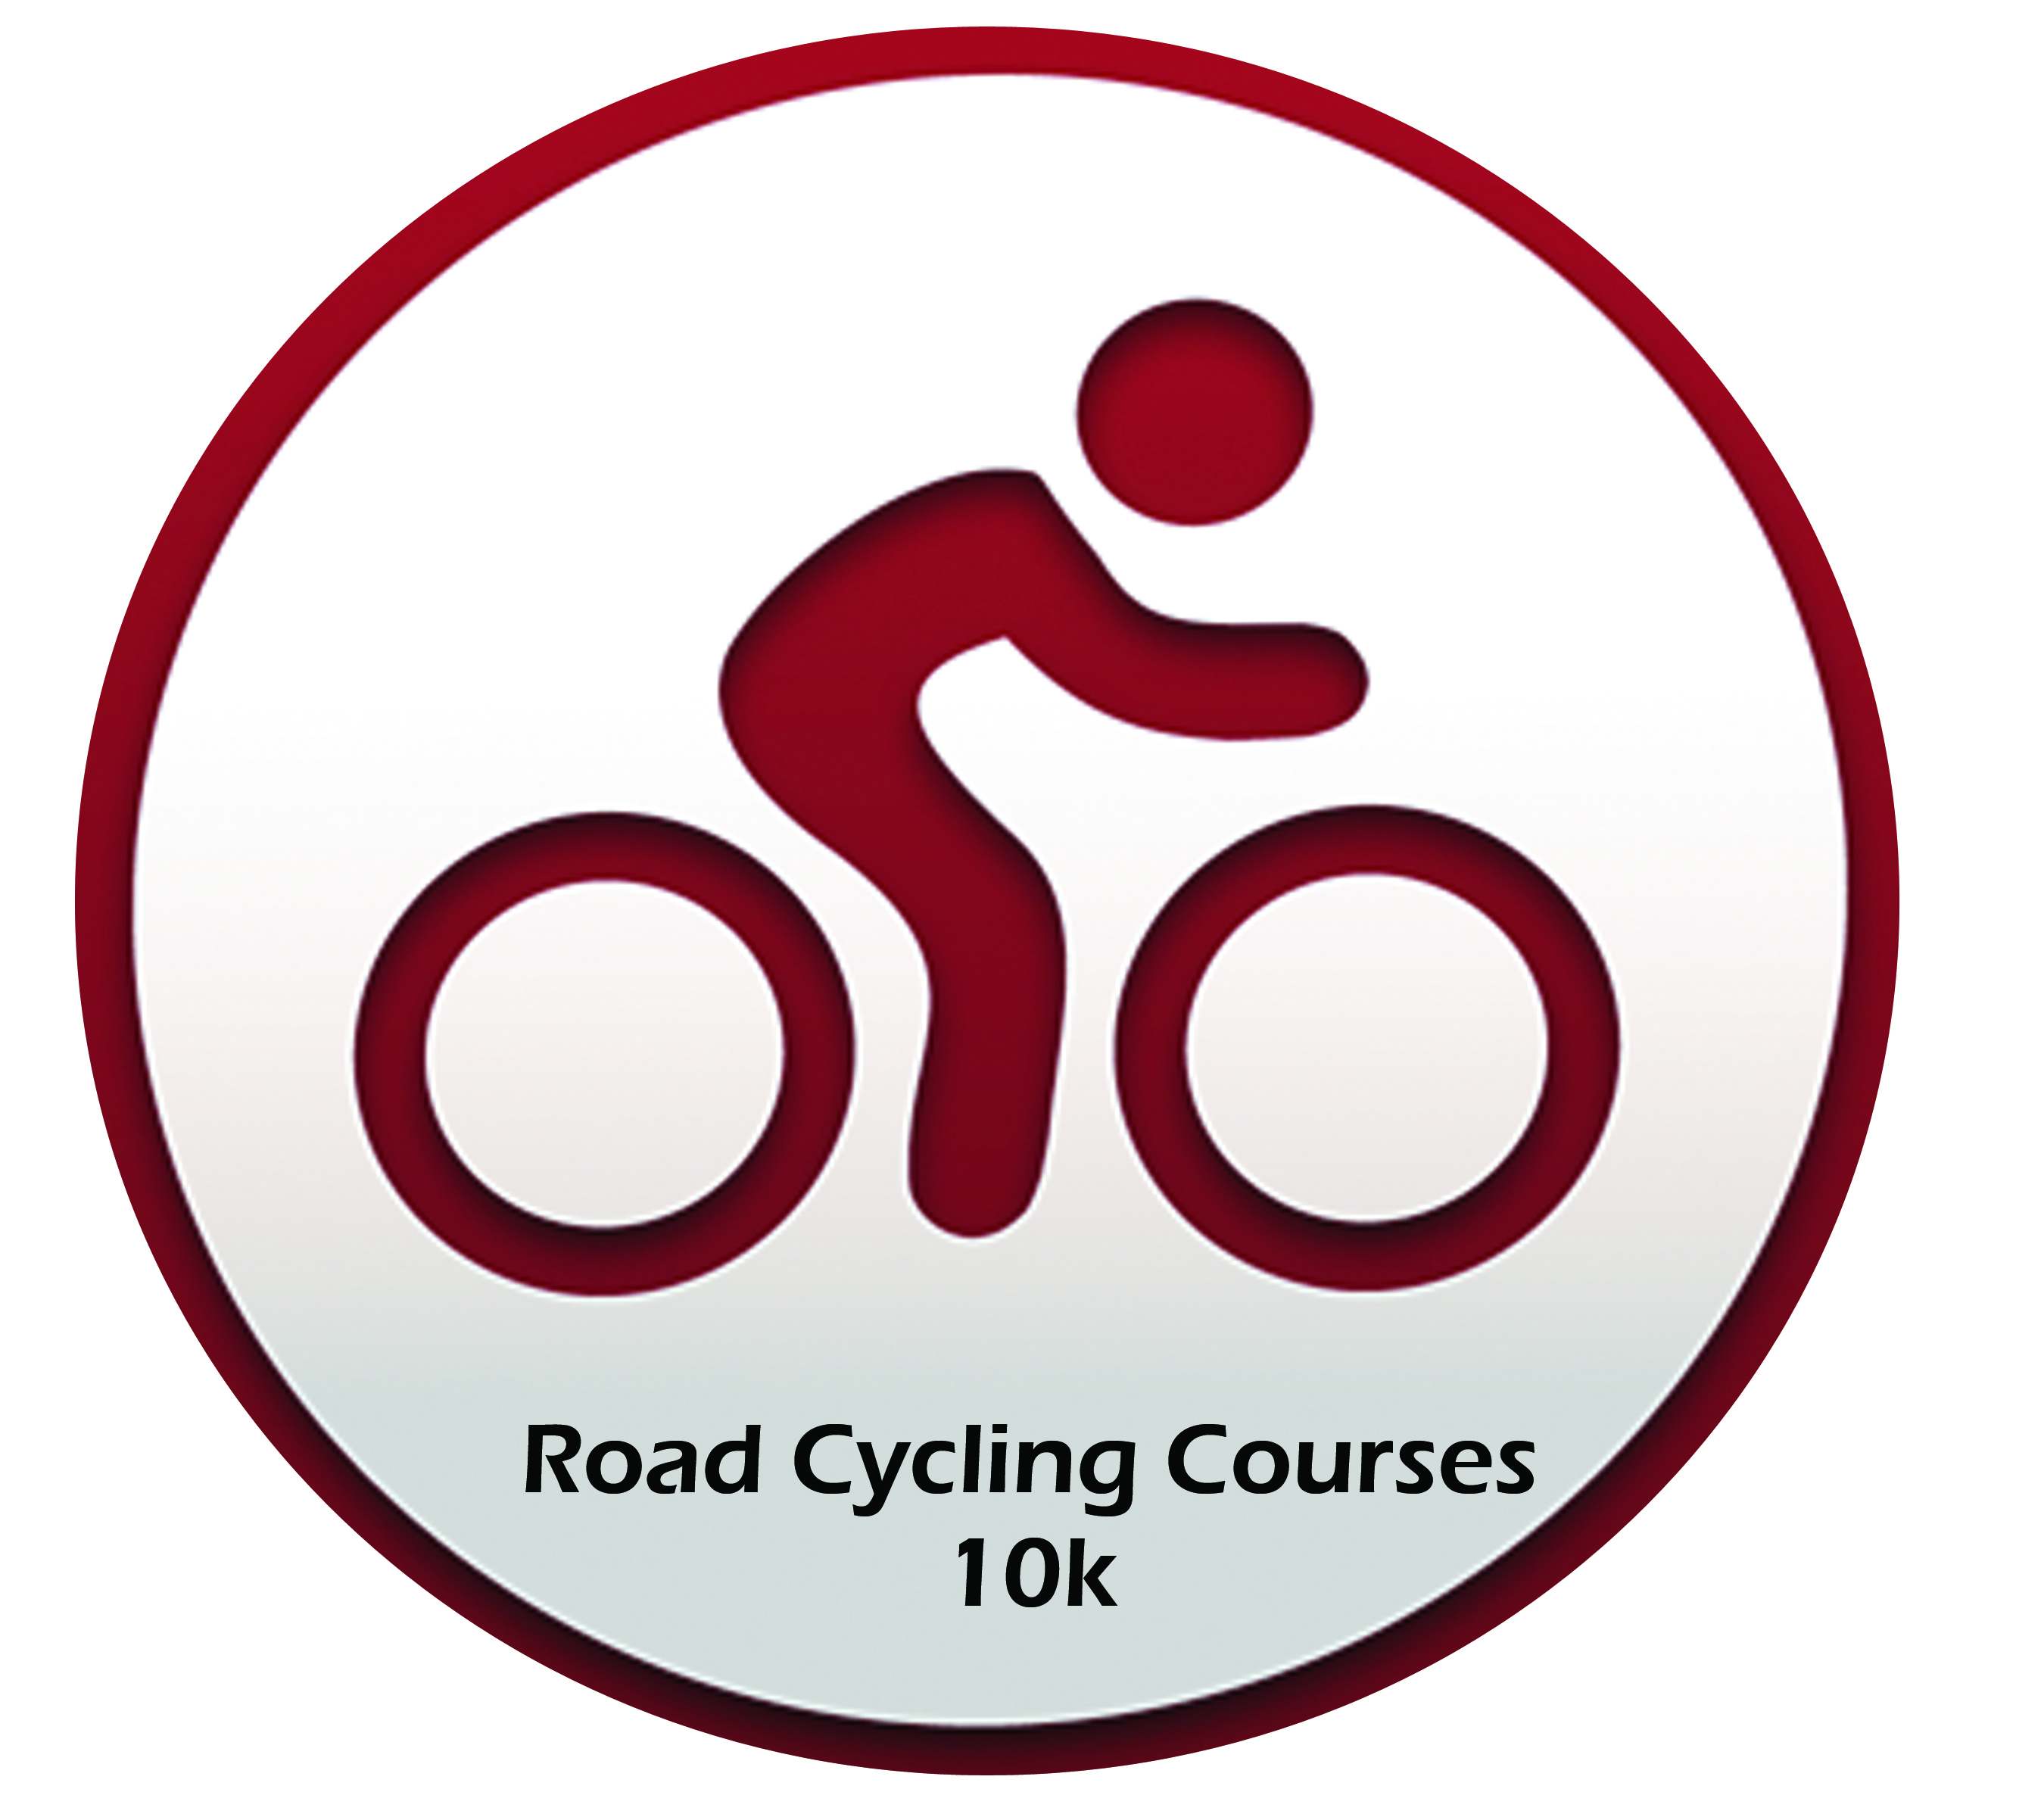 Road Cycling Course-10k.jpg